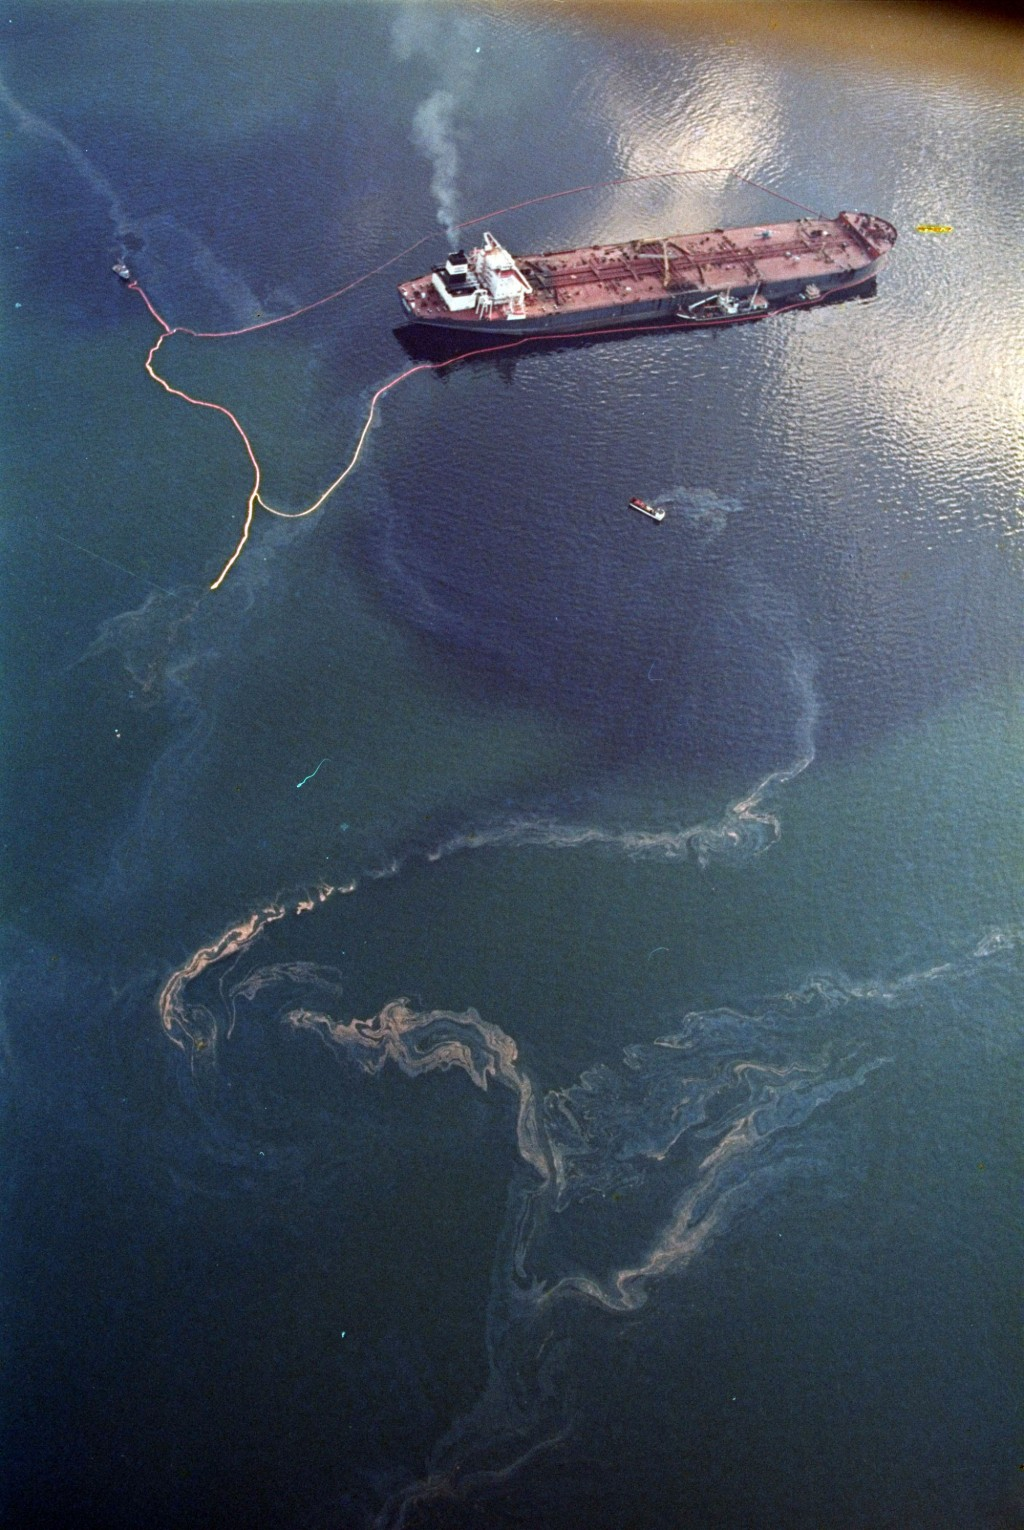 FILE - In this April 9, 1989, file photo, crude oil from the tanker Exxon Valdez, top, swirls on the surface of Alaska's Prince William Sound near Nak